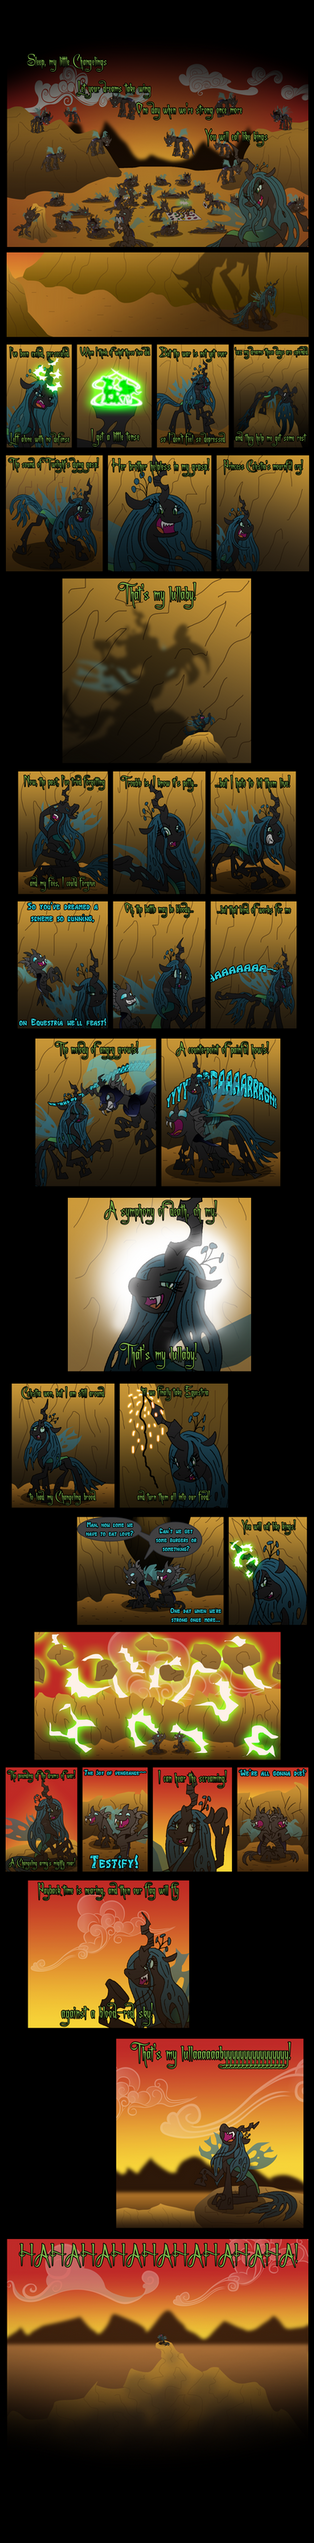 Queen Chrysalis - My Lullaby by unoservix